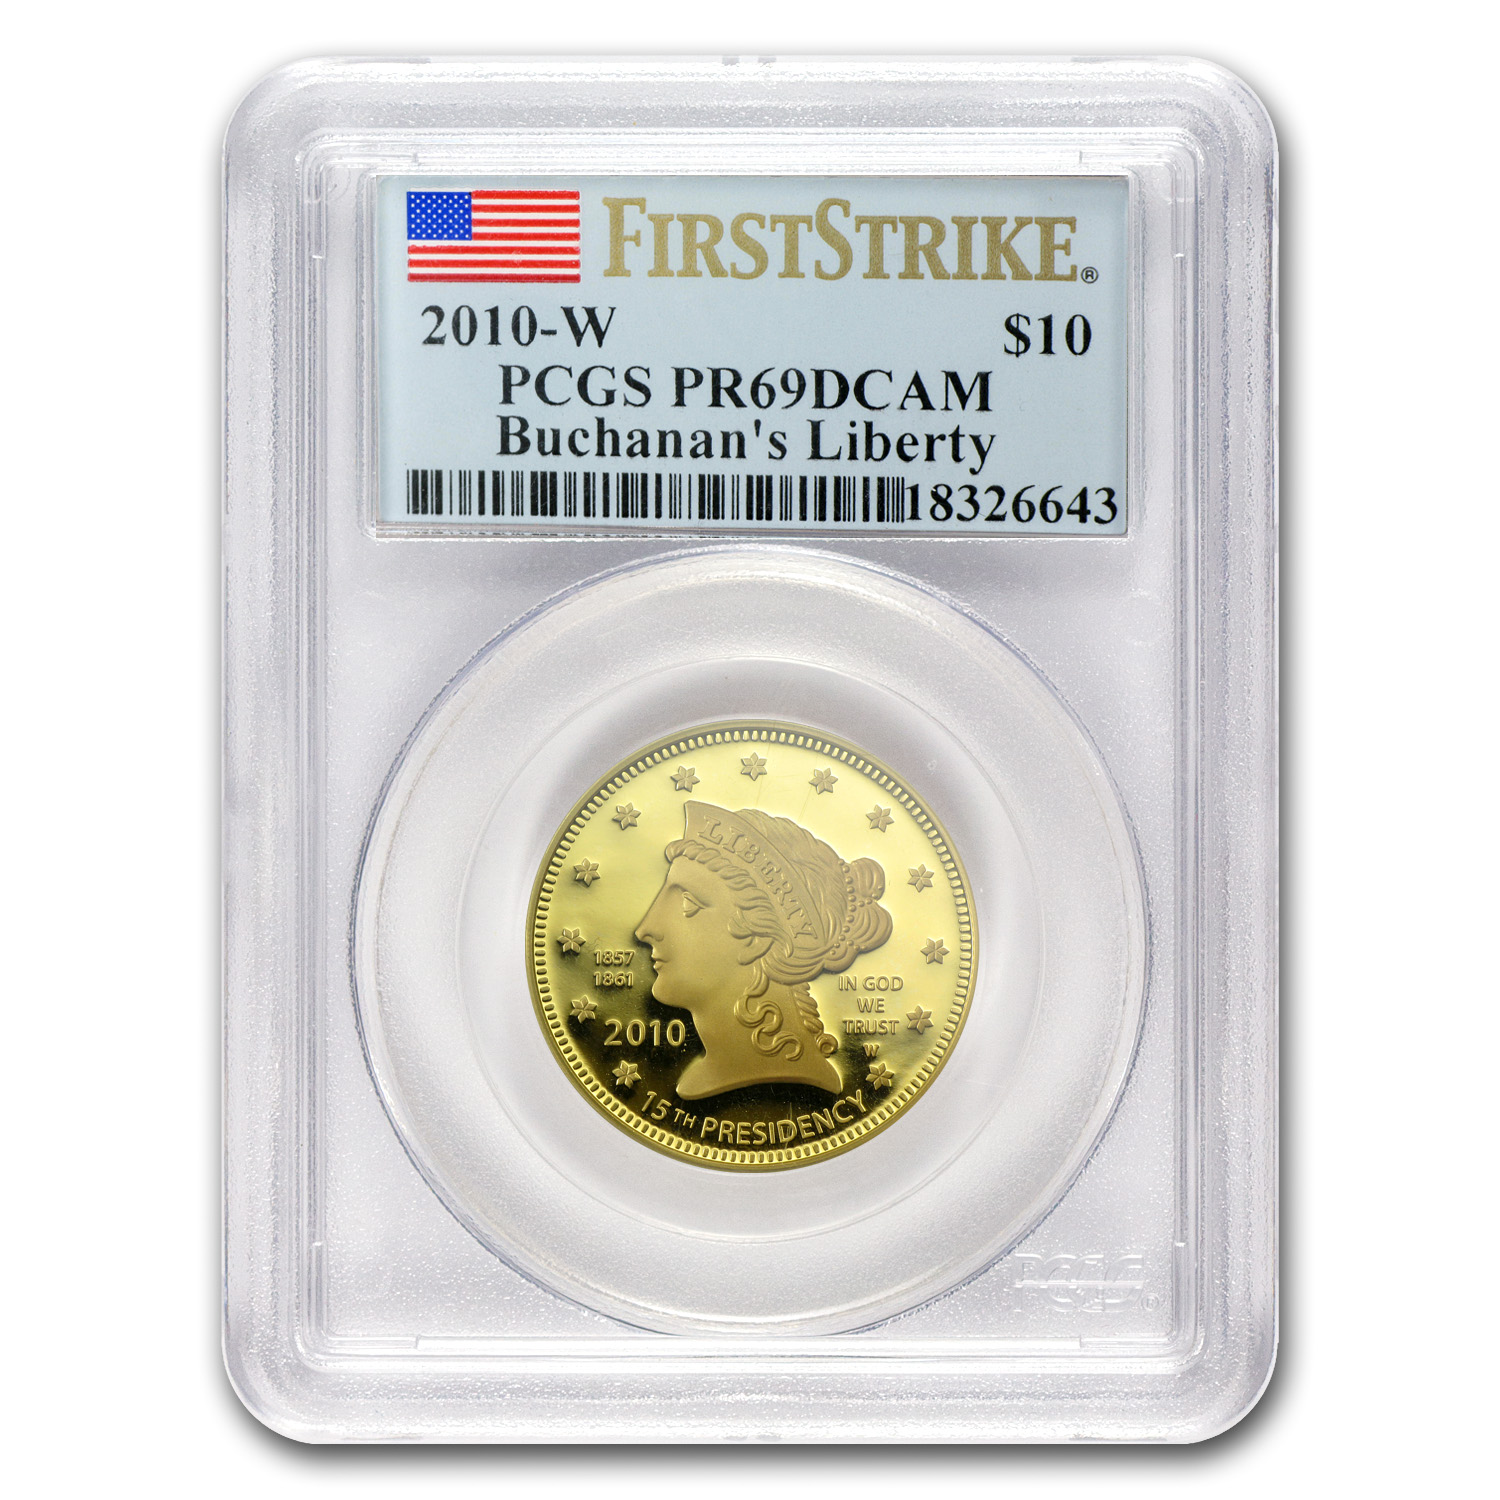 2010-W 1/2 oz Proof Gold Buchanan's Liberty PR-69 PCGS DCAM (FS)